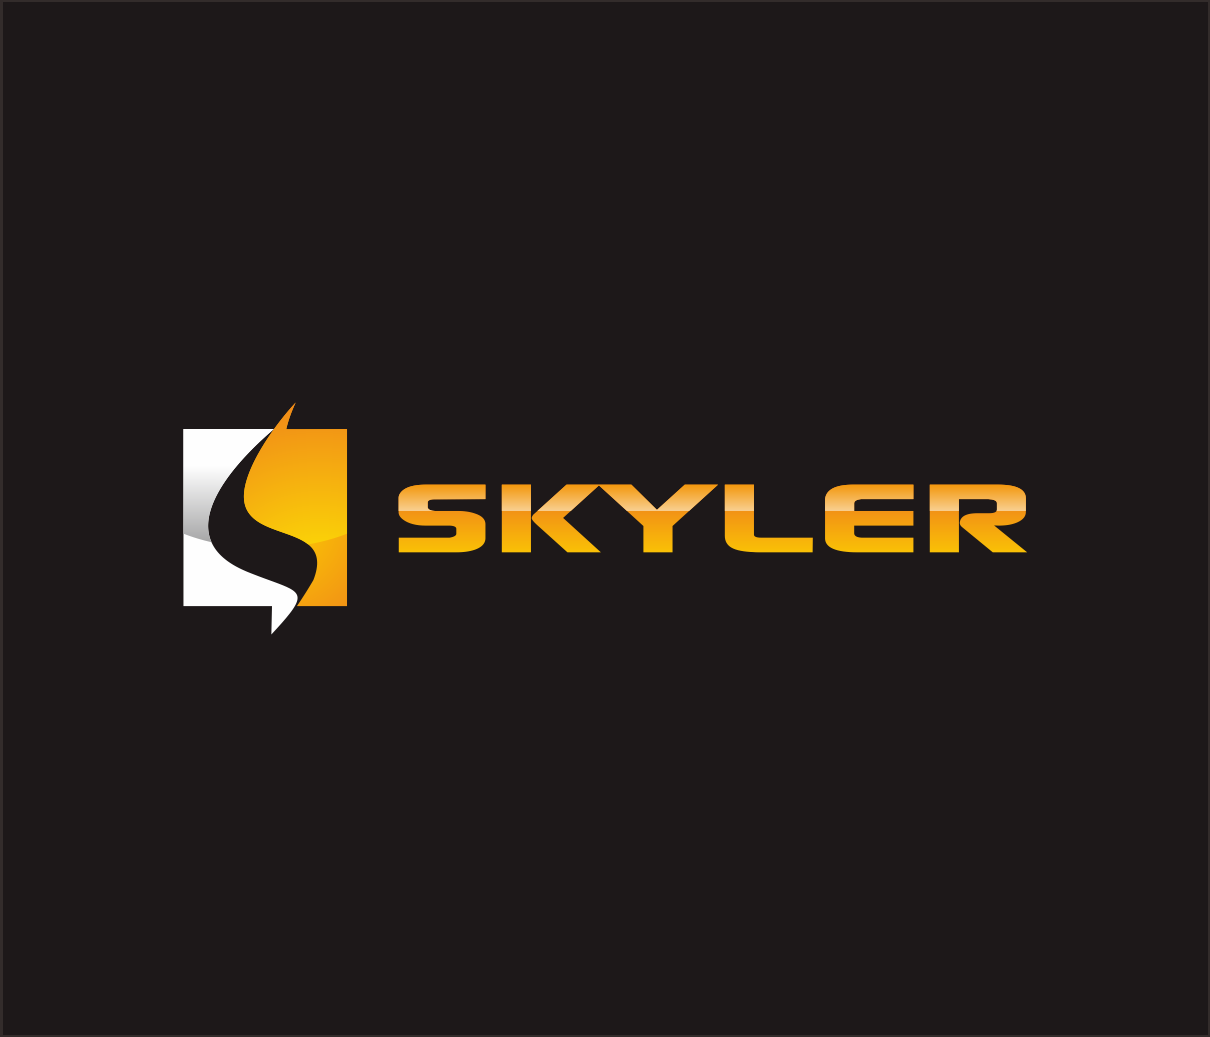 Logo Design by Armada Jamaluddin - Entry No. 170 in the Logo Design Contest Artistic Logo Design for Skyler.Asia.